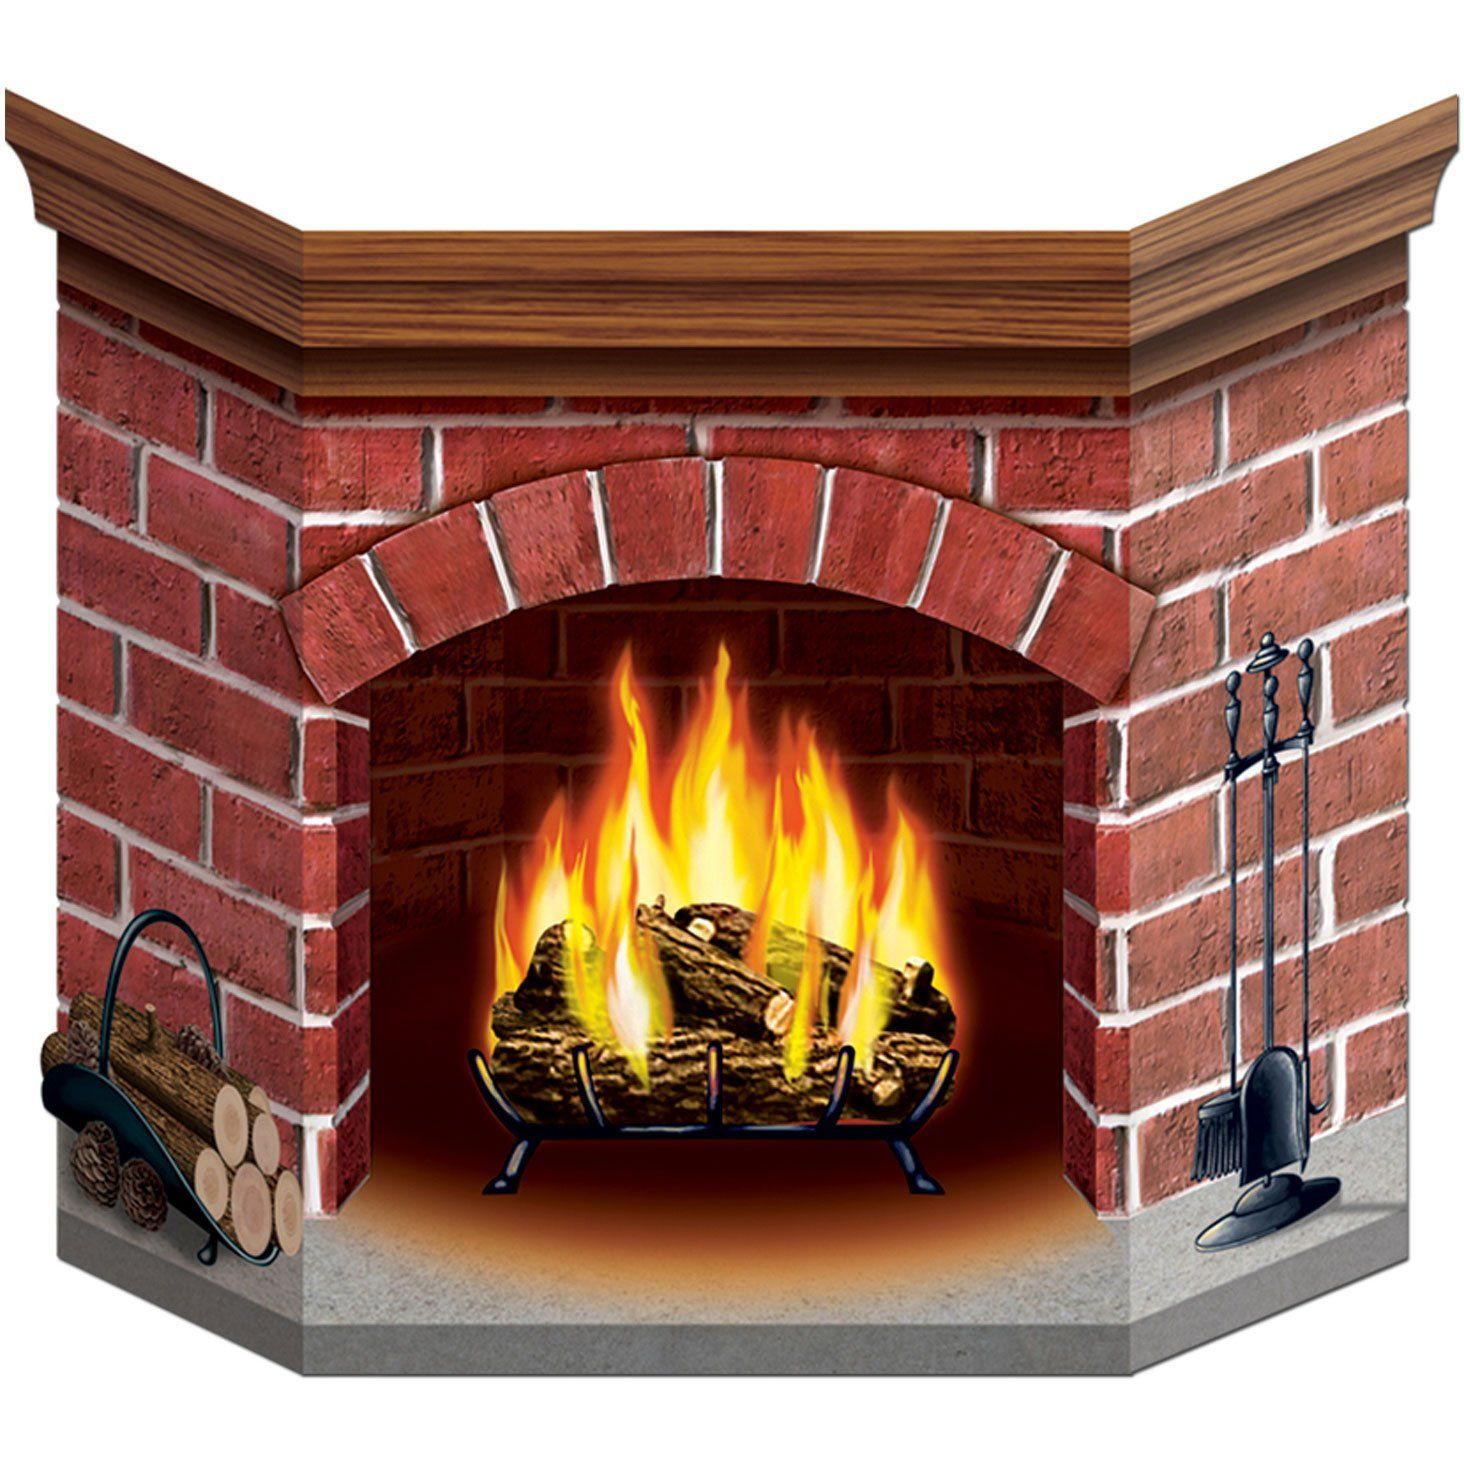 Box and Cardboard fireplace